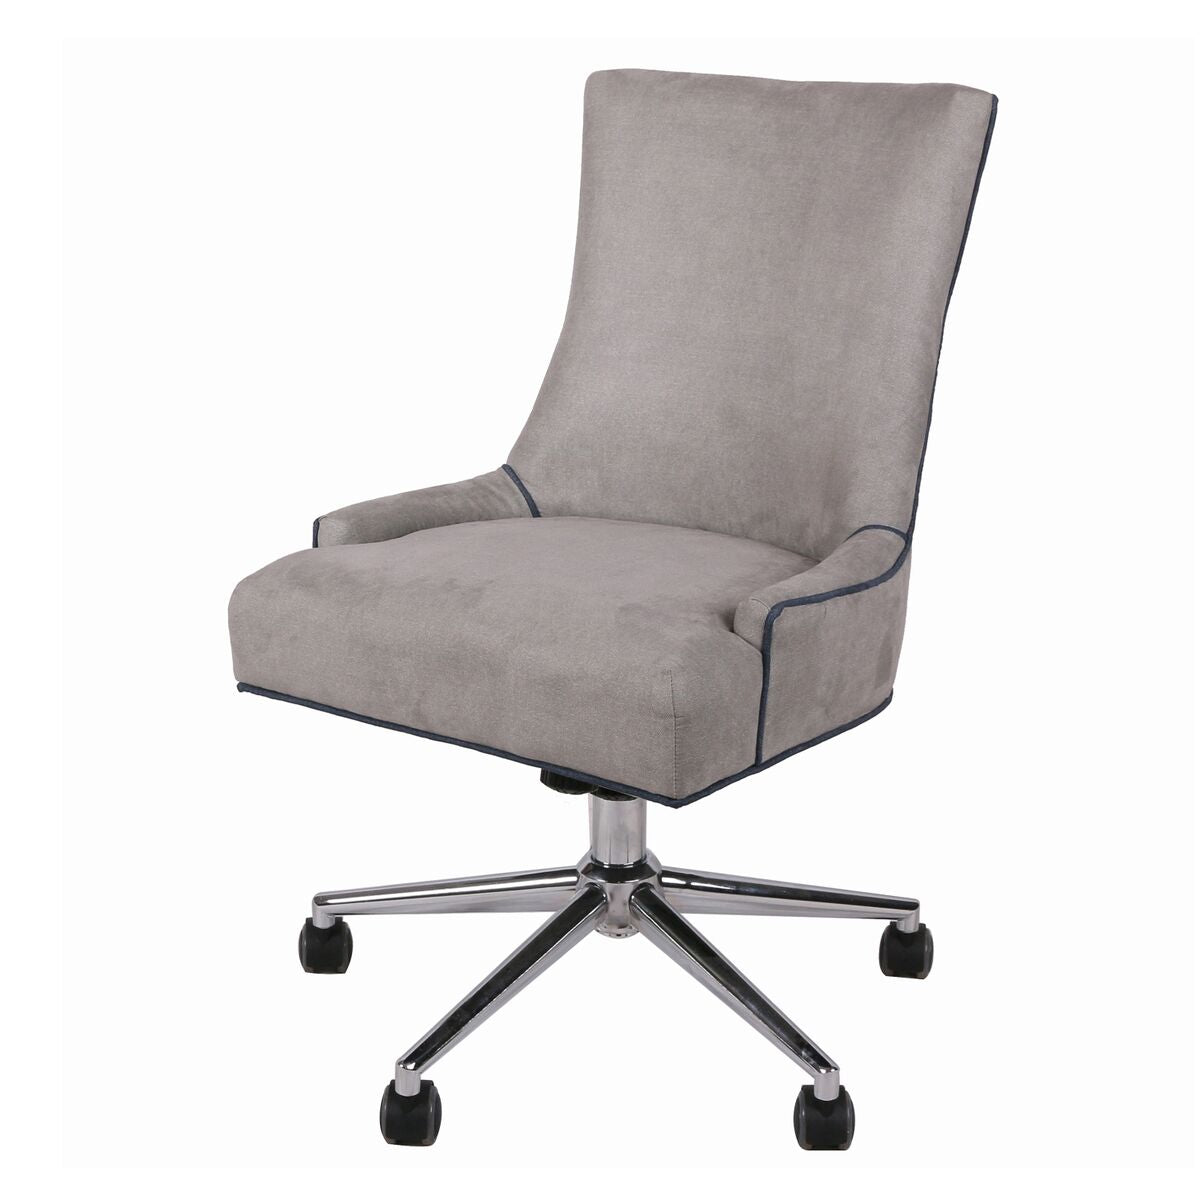 Fabric Rolling Office or Conference Chair in Soft Taupe